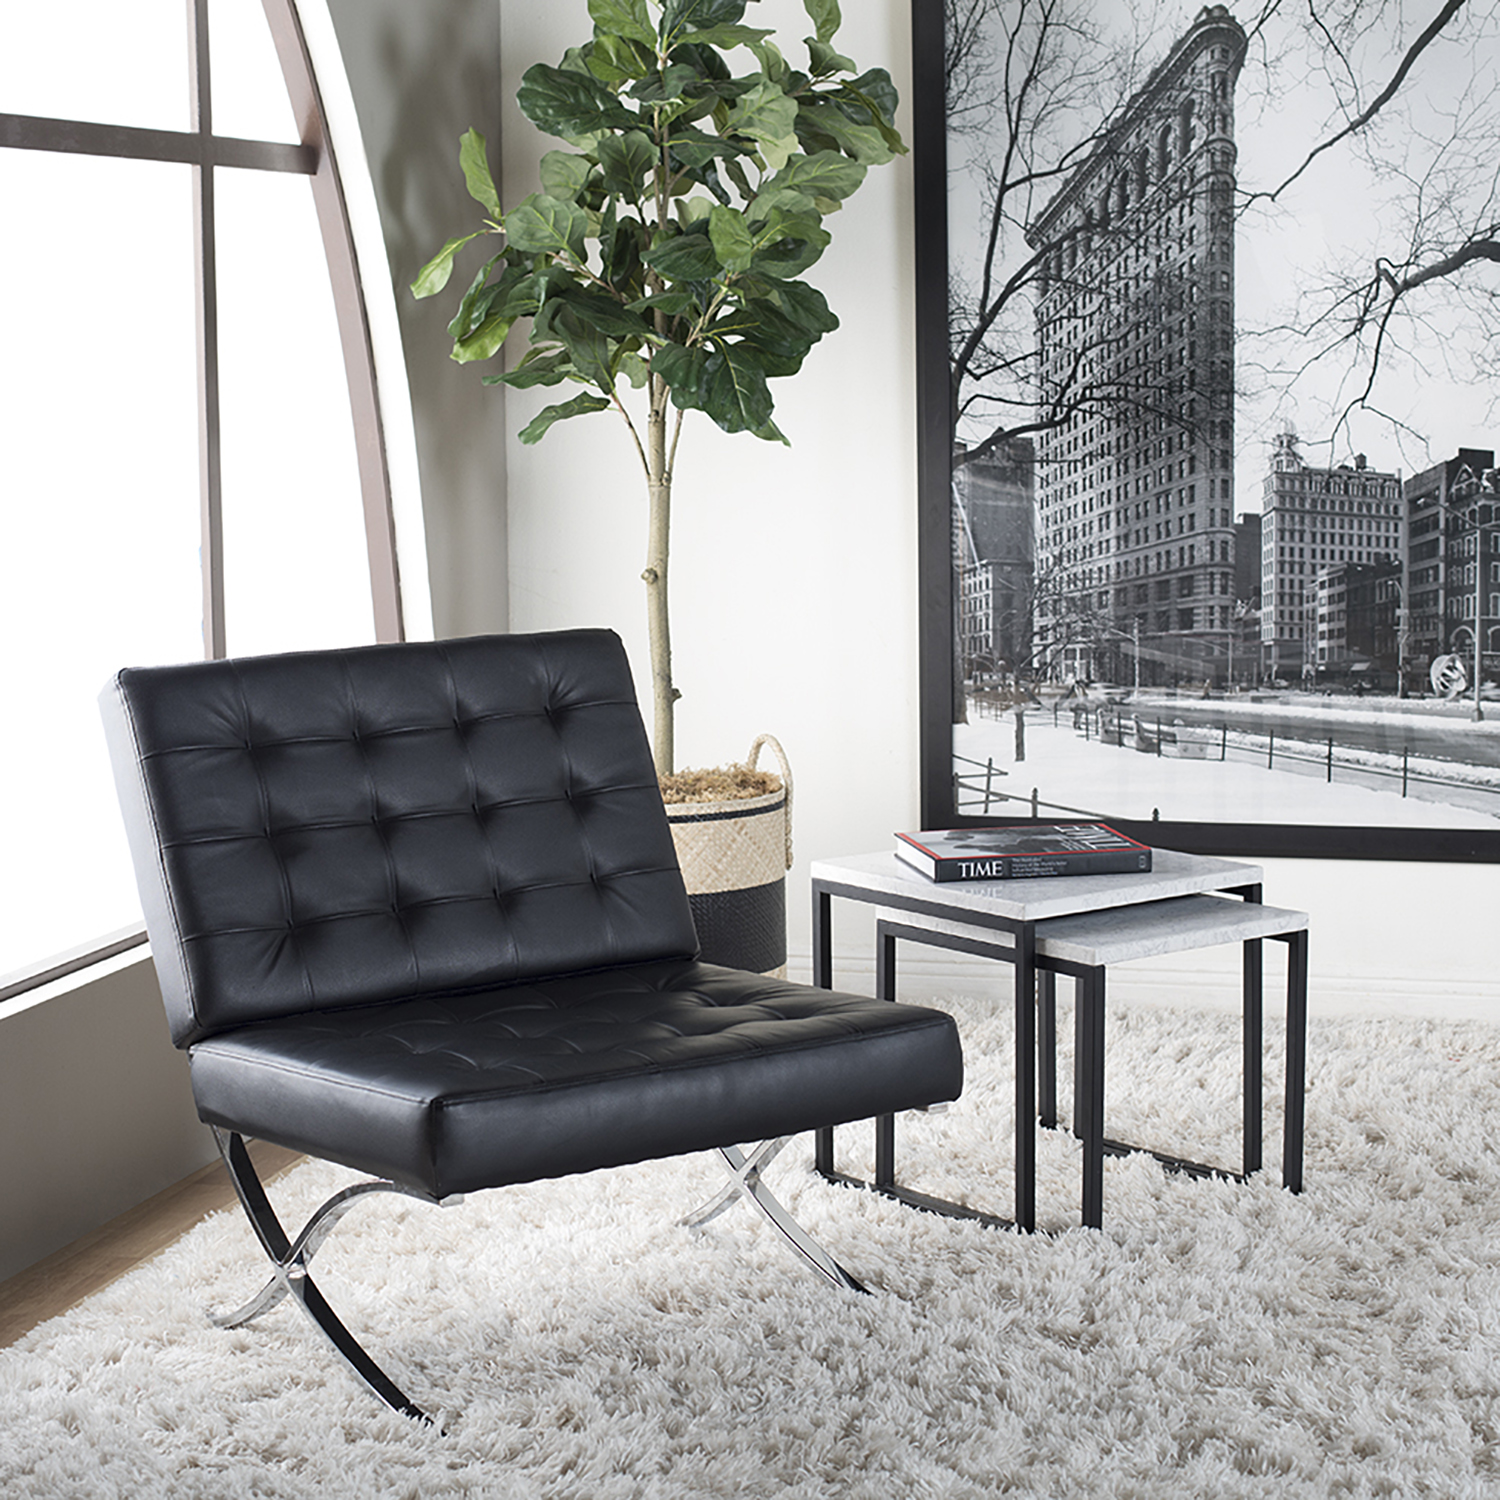 Fine Atrium Modern Bonded Leather Accent Chair In Black Chrome Pabps2019 Chair Design Images Pabps2019Com